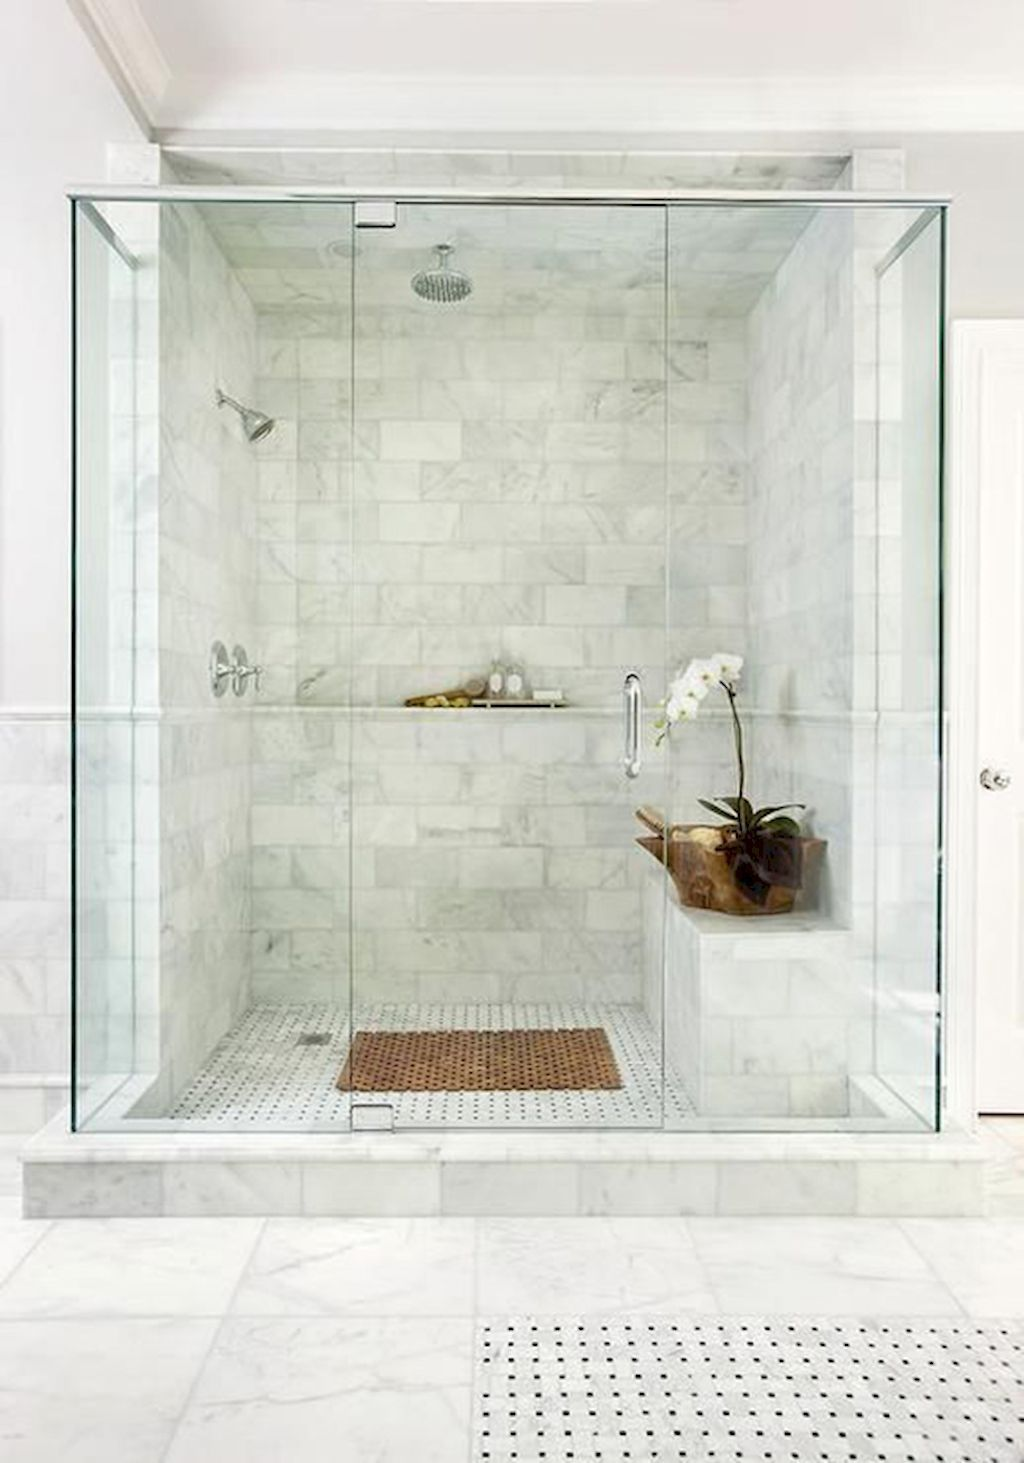 60 Adorable Master Bathroom Shower Remodel Ideas 30  Decoración Cool Bathroom Remodel Return On Investment Inspiration